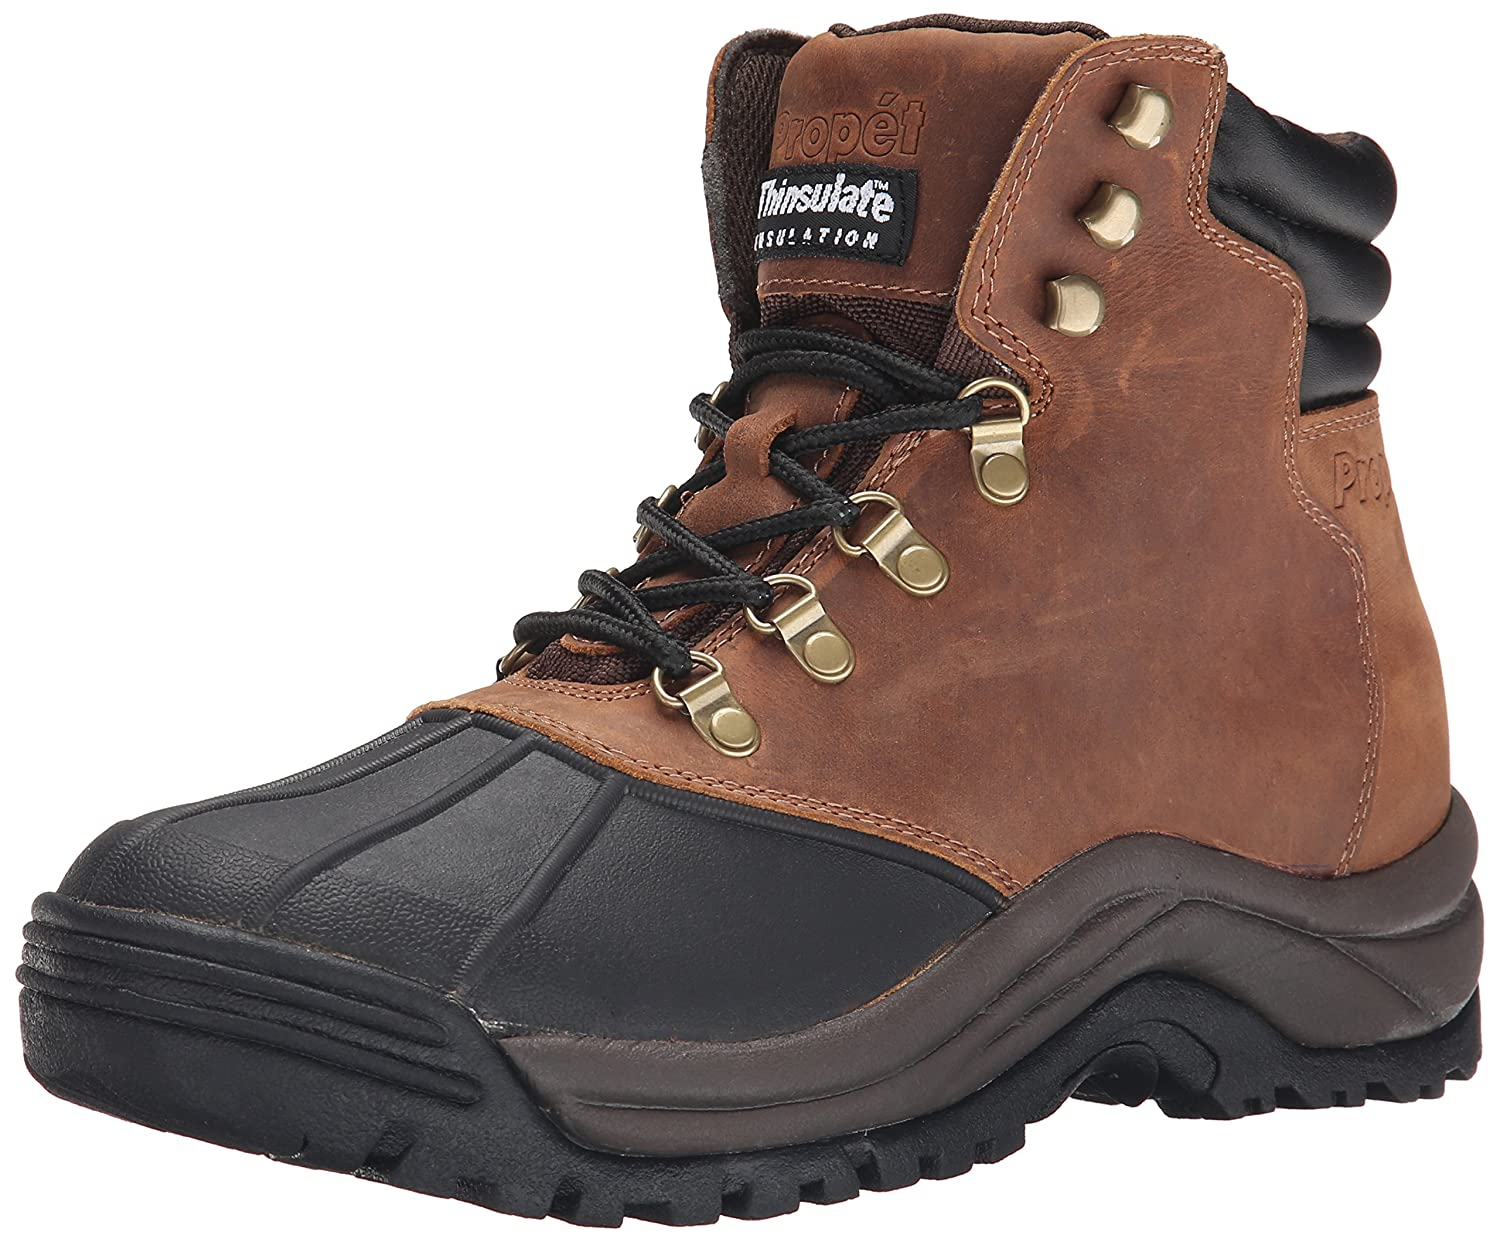 Propet Men's Blizzard Mid Lace Brown/Black boots 7 M